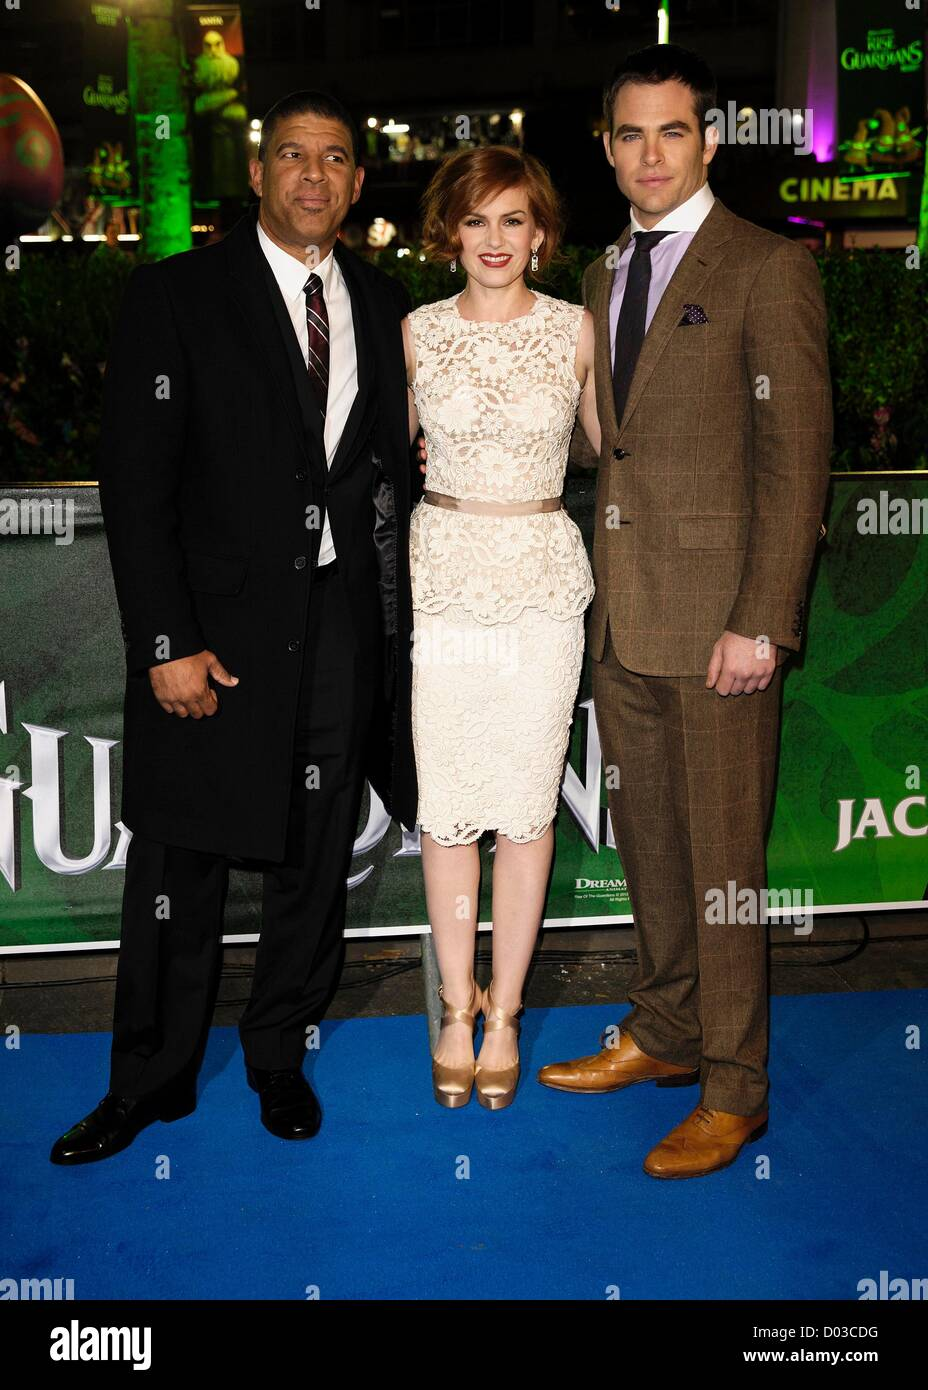 Isla Fisher, Chris Pine and Peter Ramsey (Director) Isla Fisher attends the UK Premiere of Rise of the Guardians - Stock Image